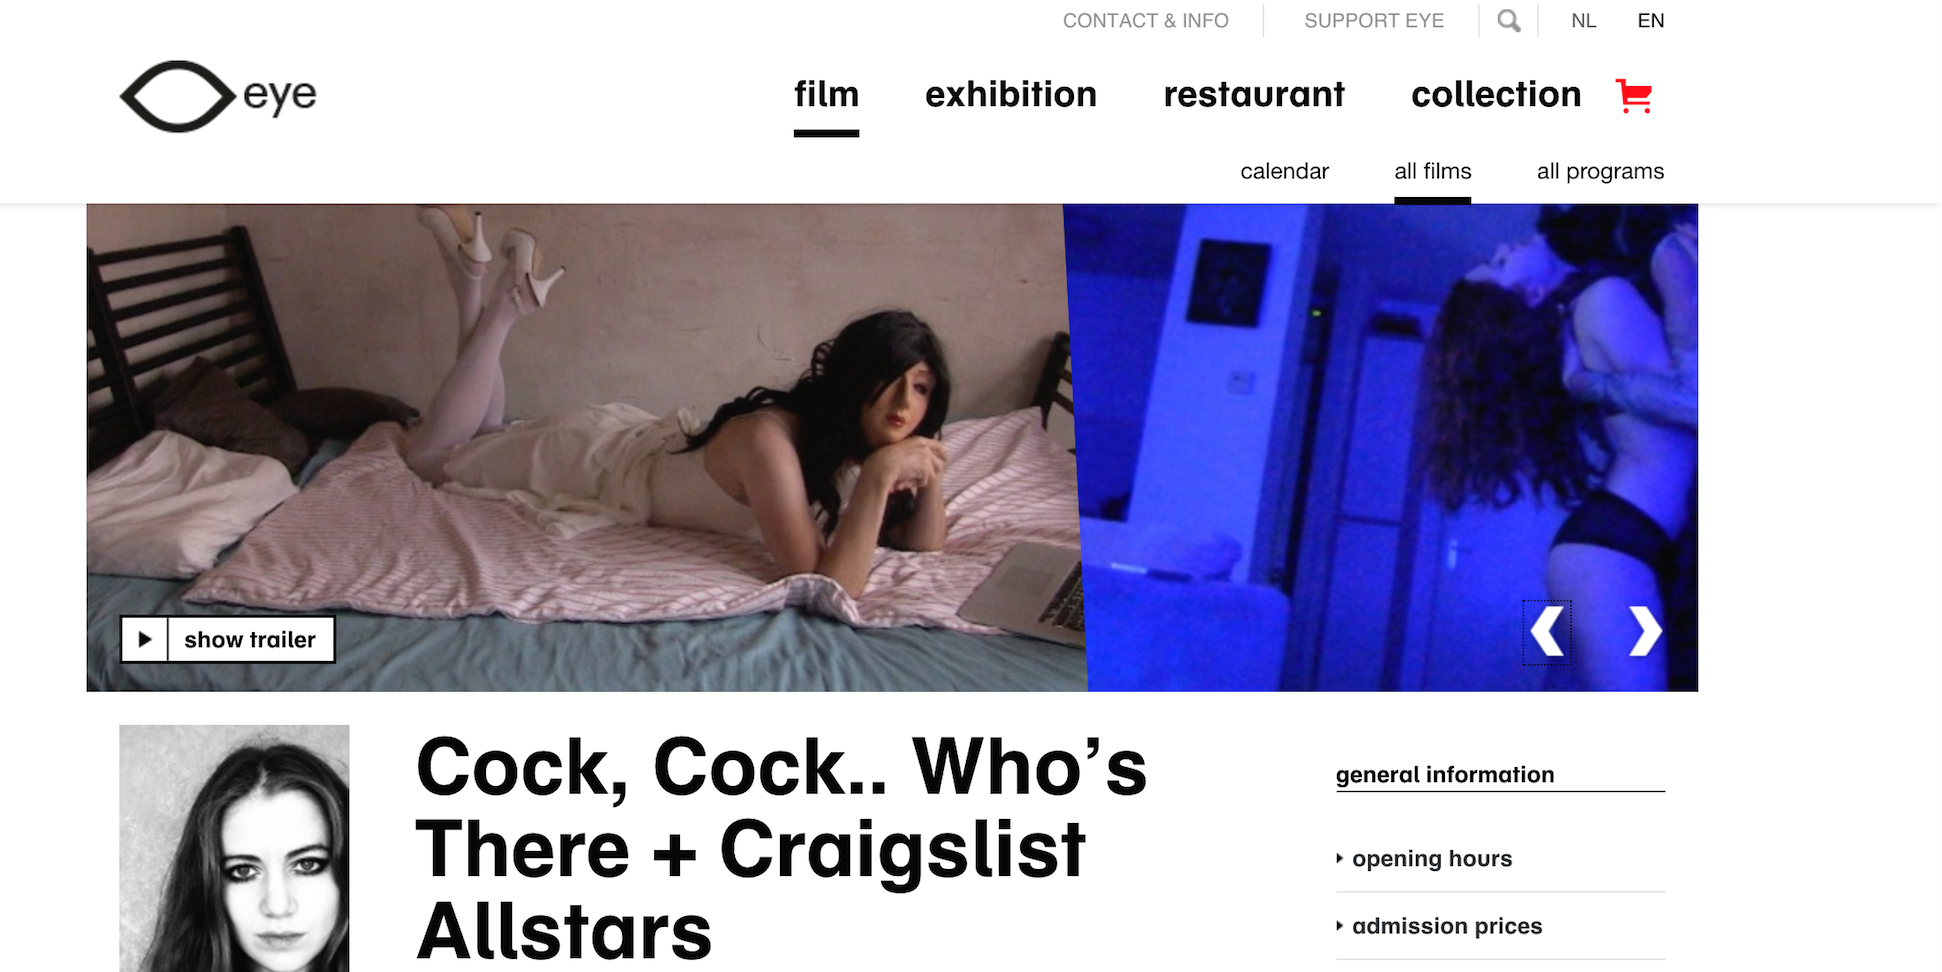 On 15th of June Craigslist Allstars & Cock, Cock.. Who's There? EYE Film museum starting 8pm!!